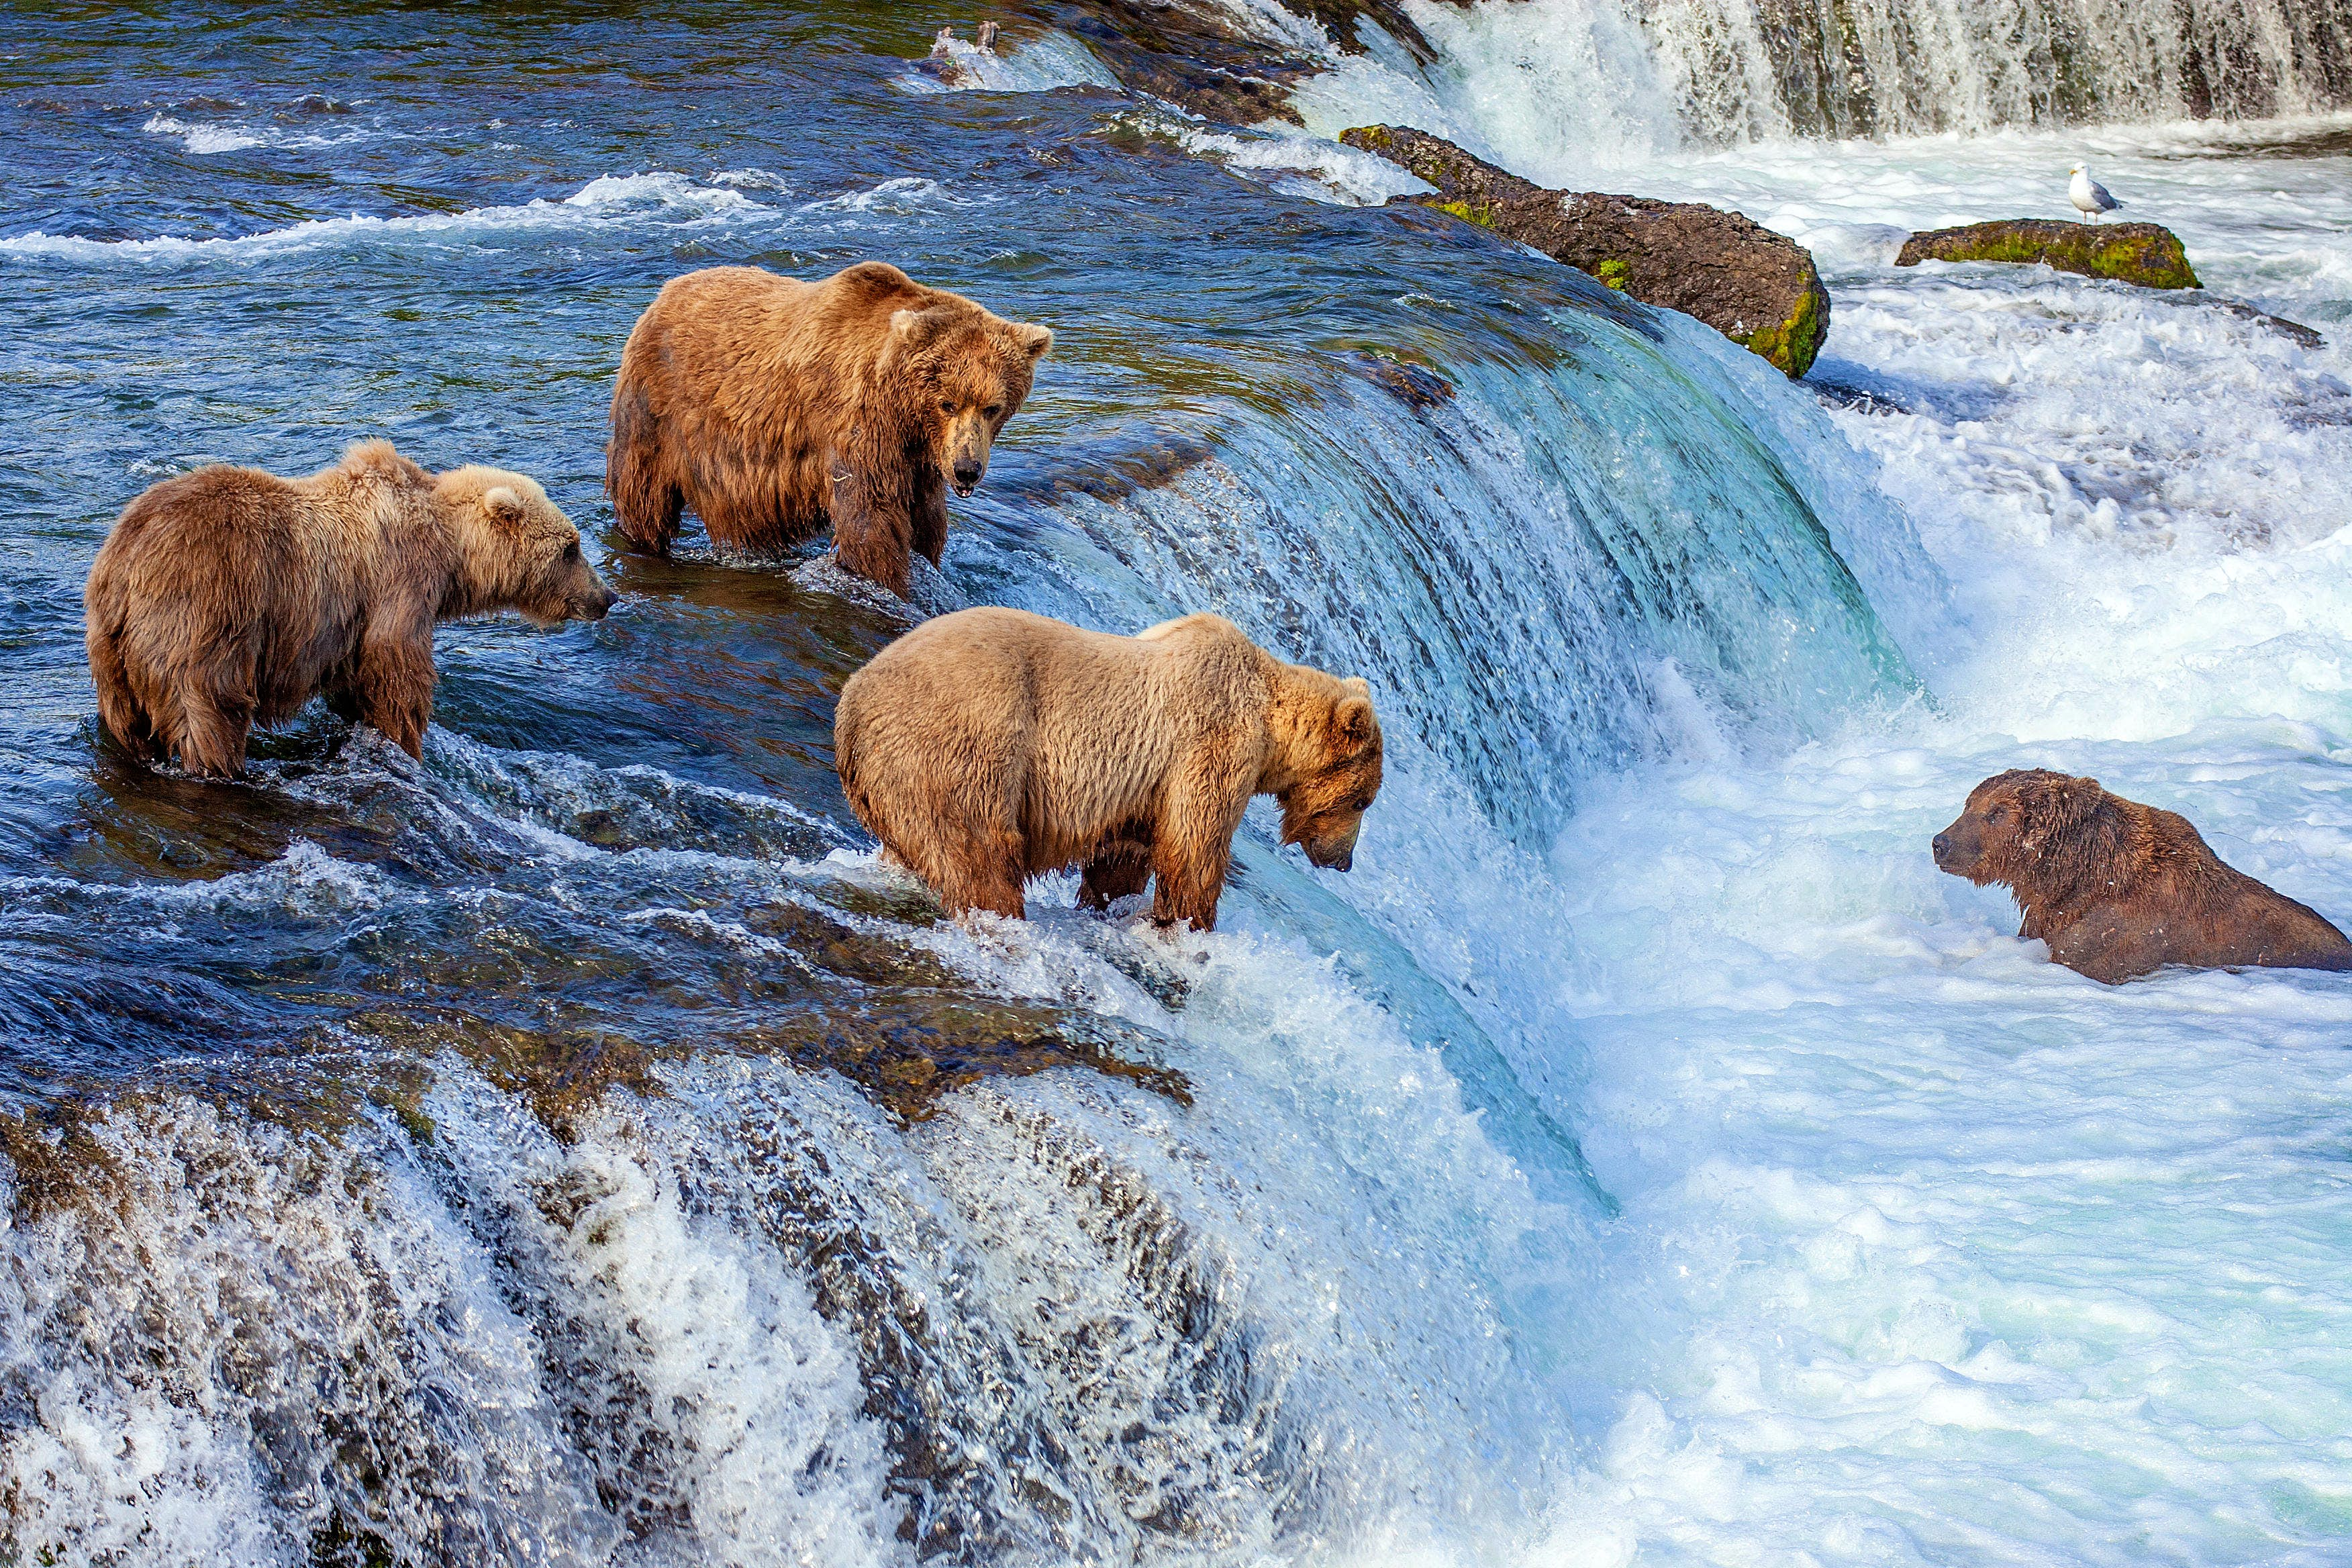 Grizzly bears standing in the foaming waters of Brooks Falls in Katmai National Park, waiting to grab salmon